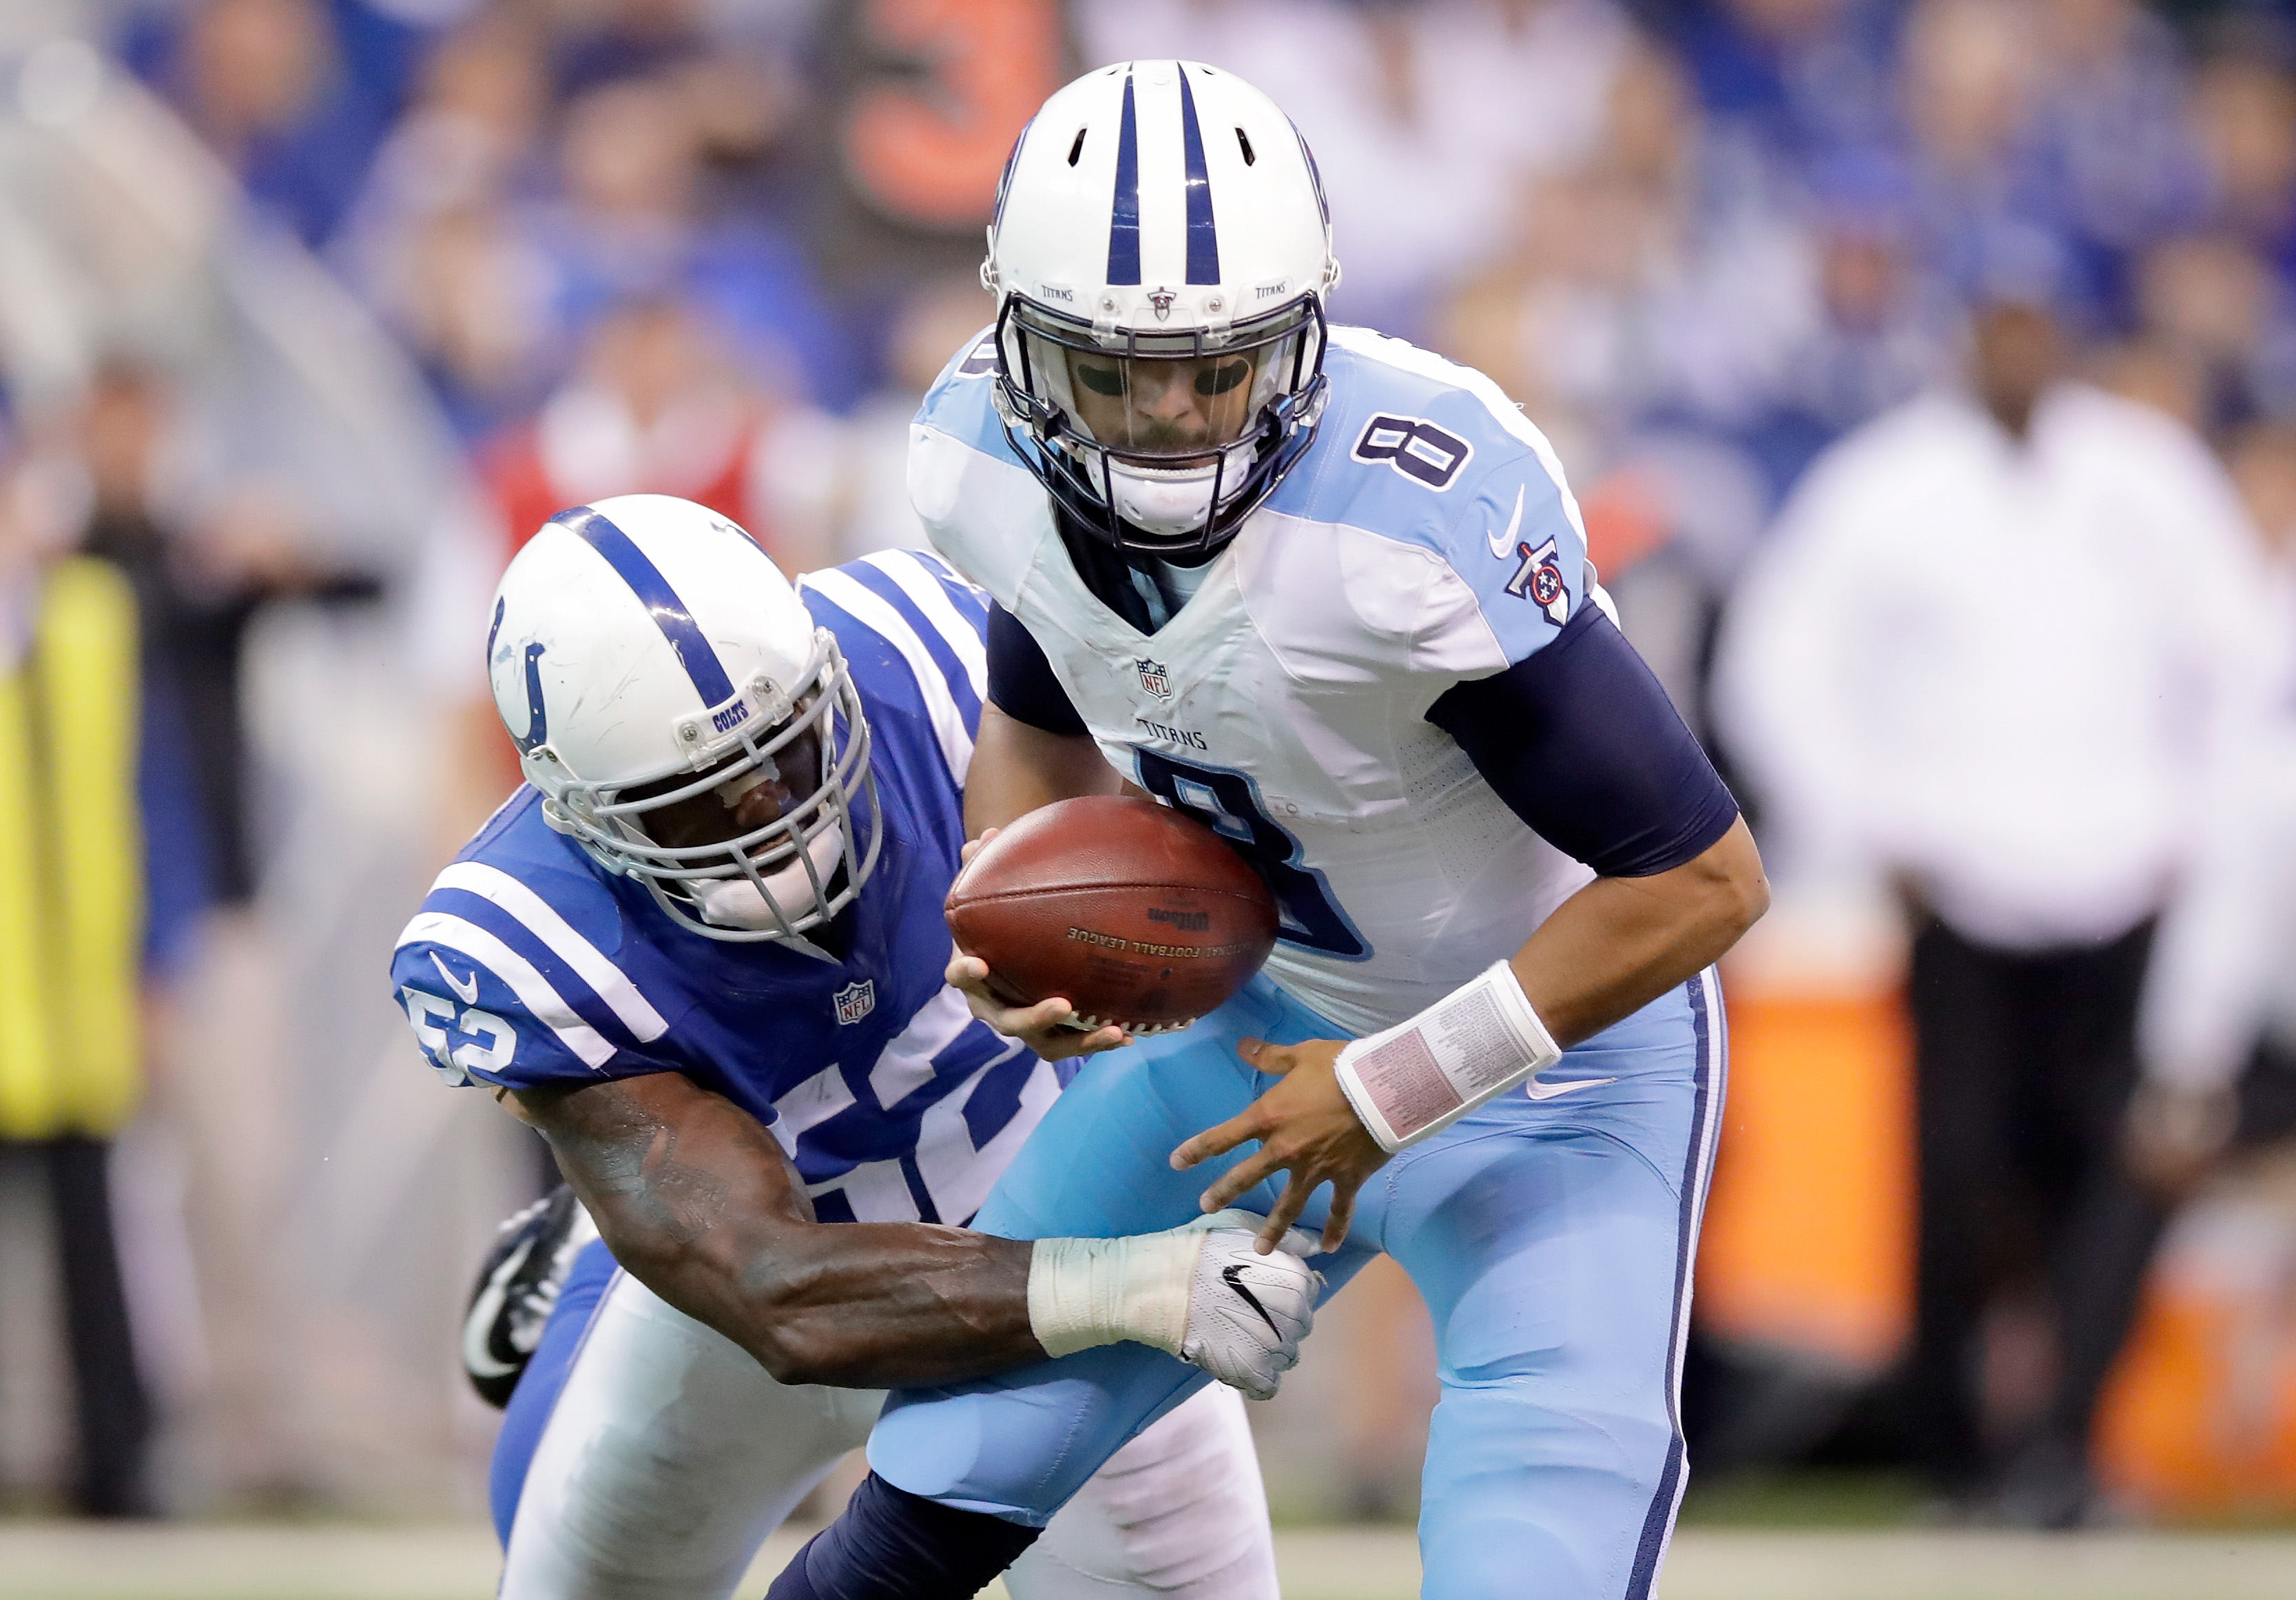 624668586-tennessee-titans-v-indianapolis-colts.jpg